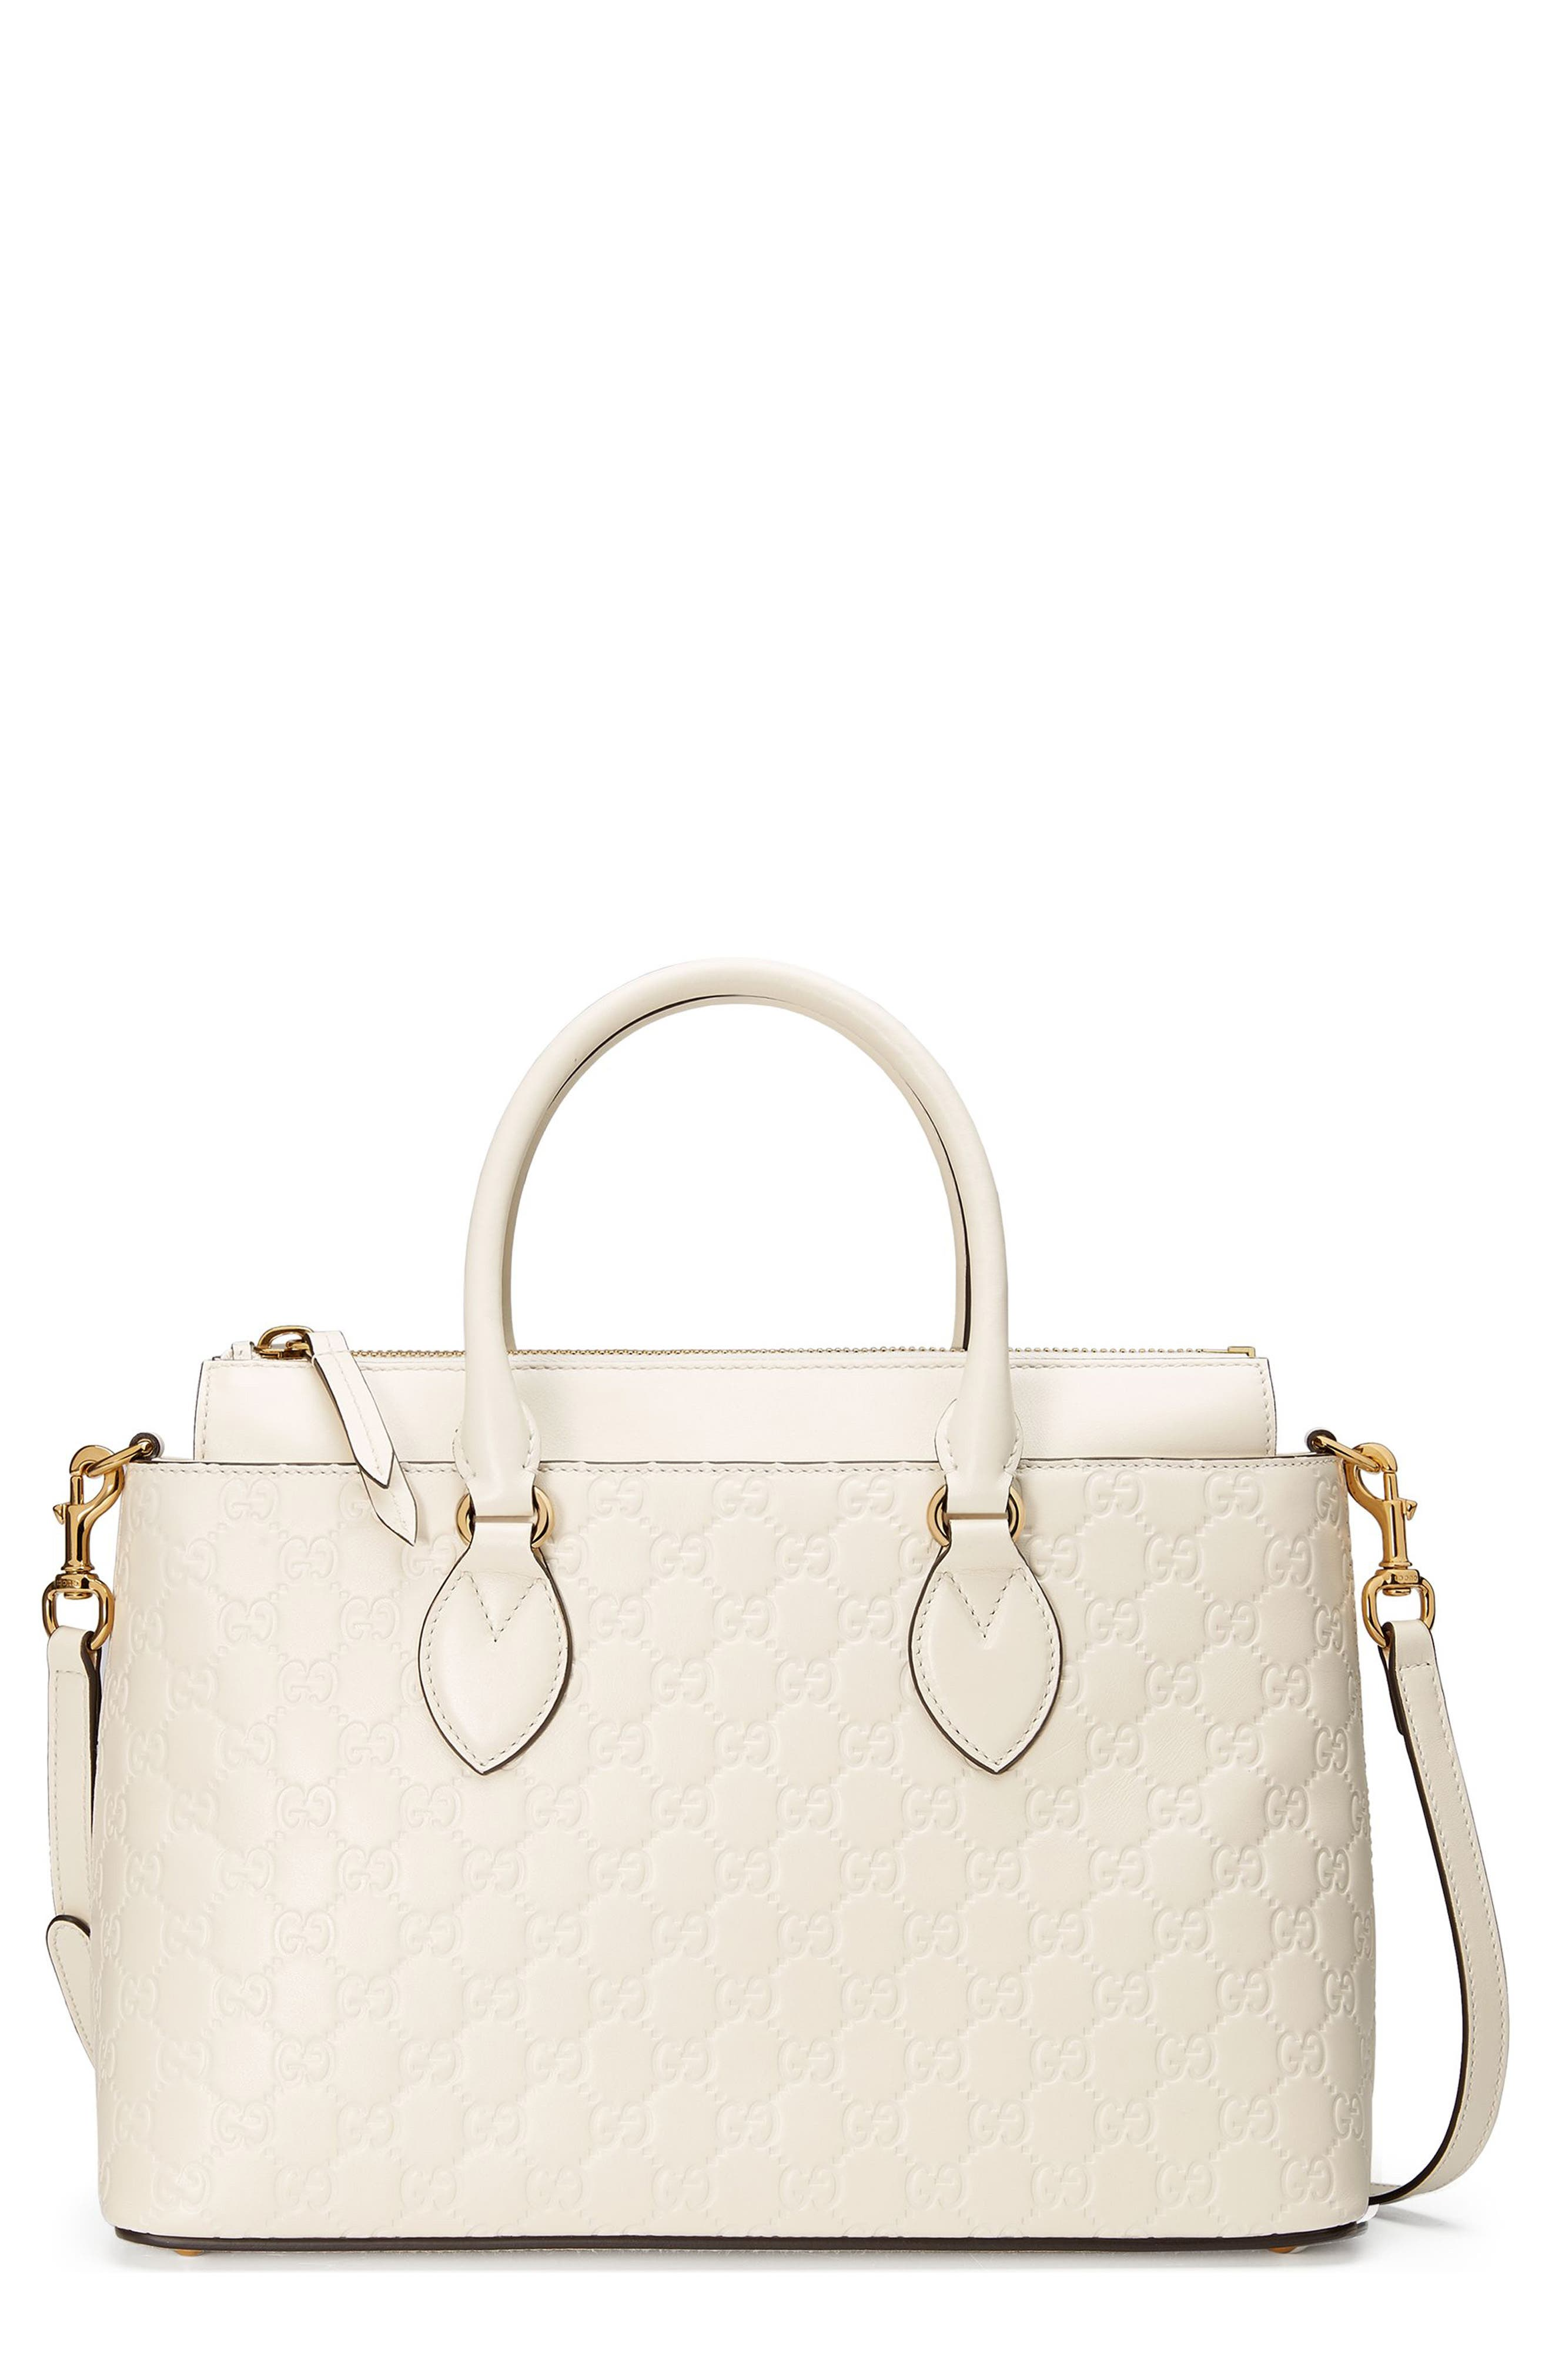 GUCCI Small Top Handle Signature Leather Satchel